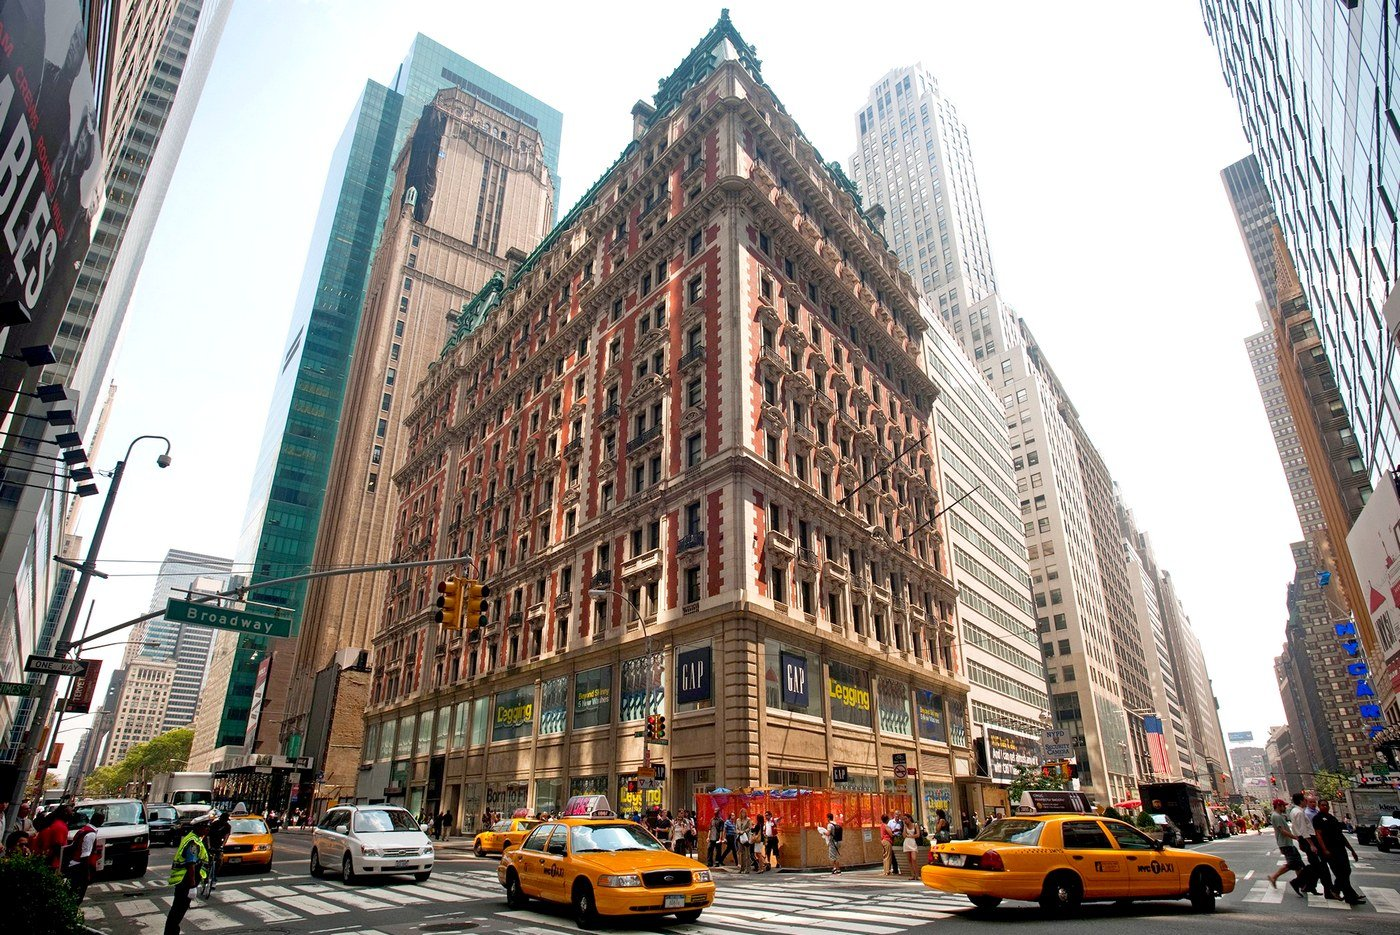 New York Hotel Hotels Coupon Code 10 Off  2020